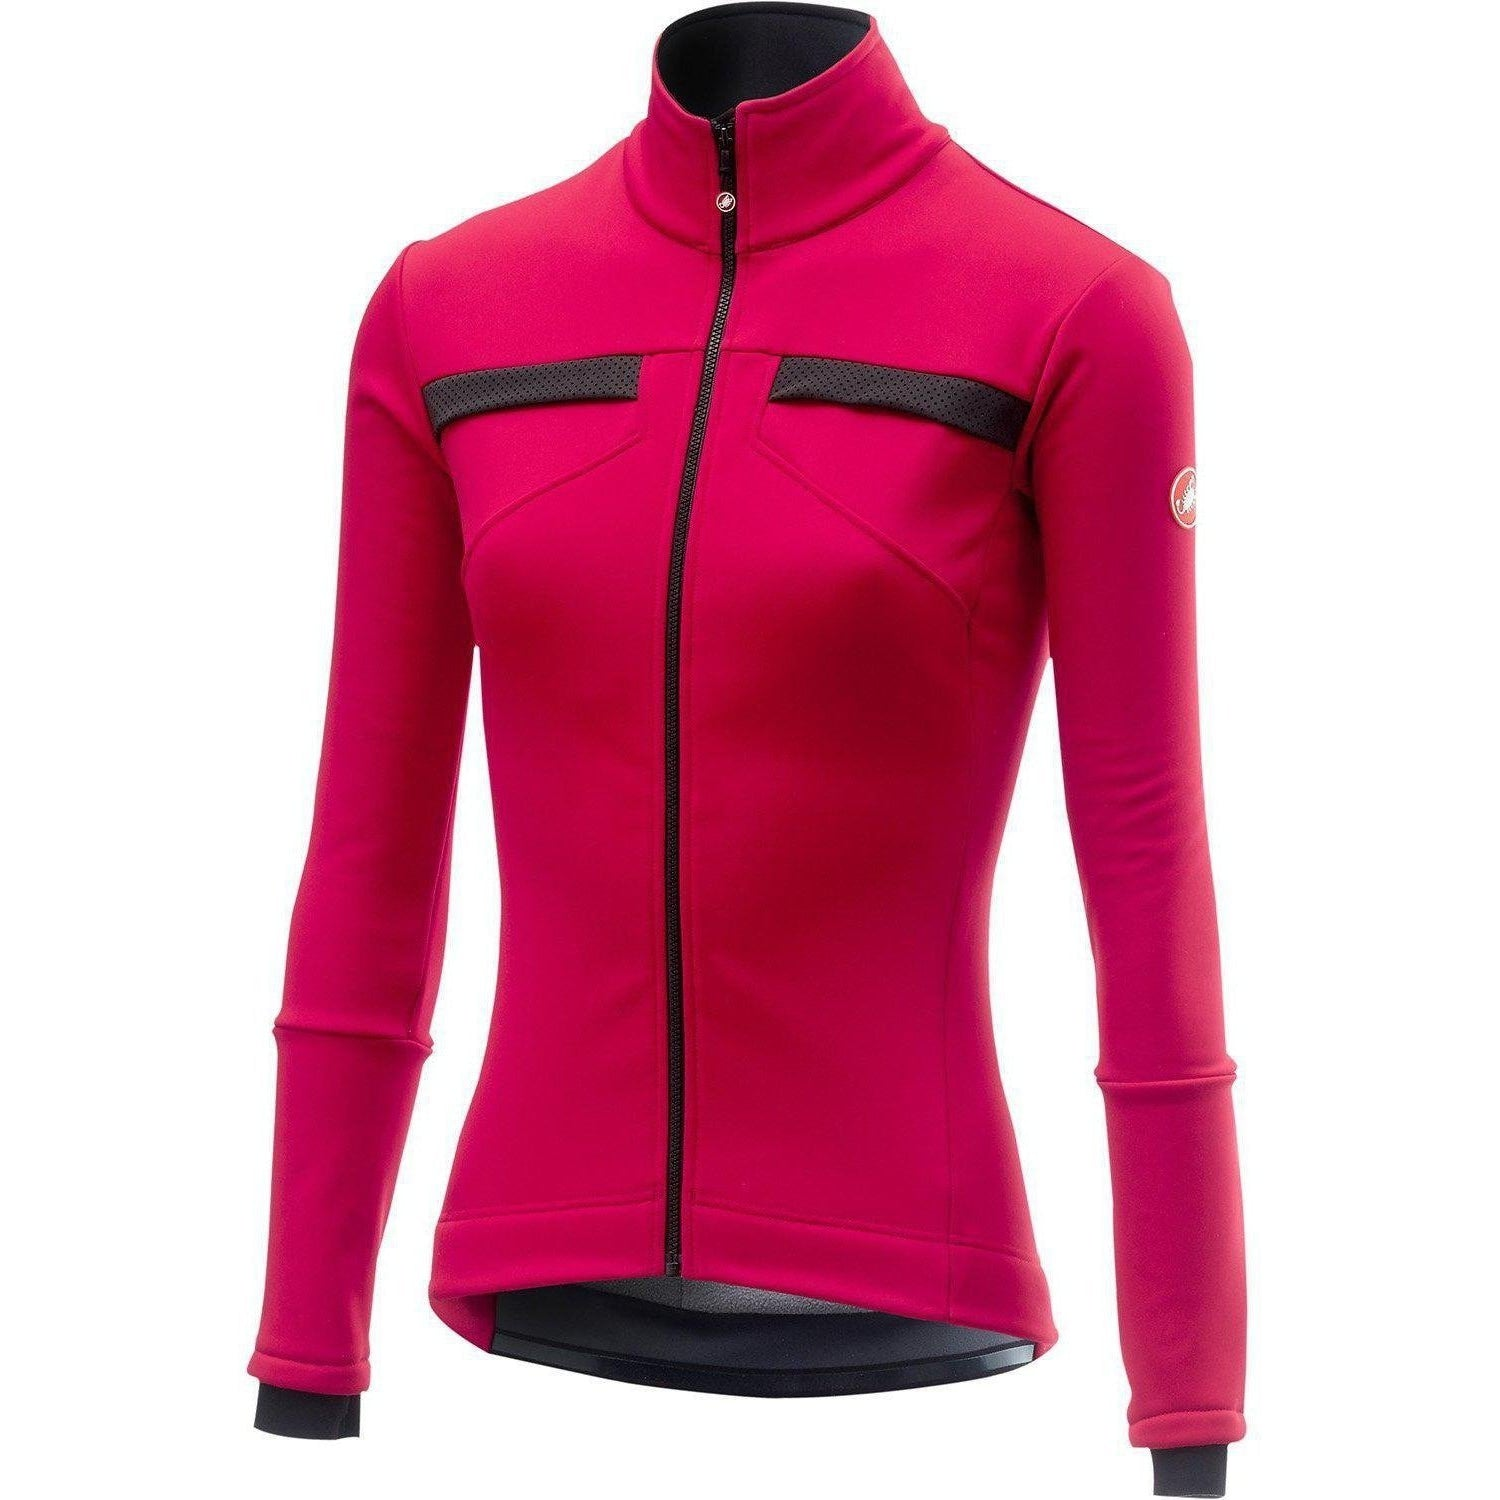 Castelli-Castelli Dinamica Jacket-Electric Magenta-XS-CS185410271-saddleback-elite-performance-cycling